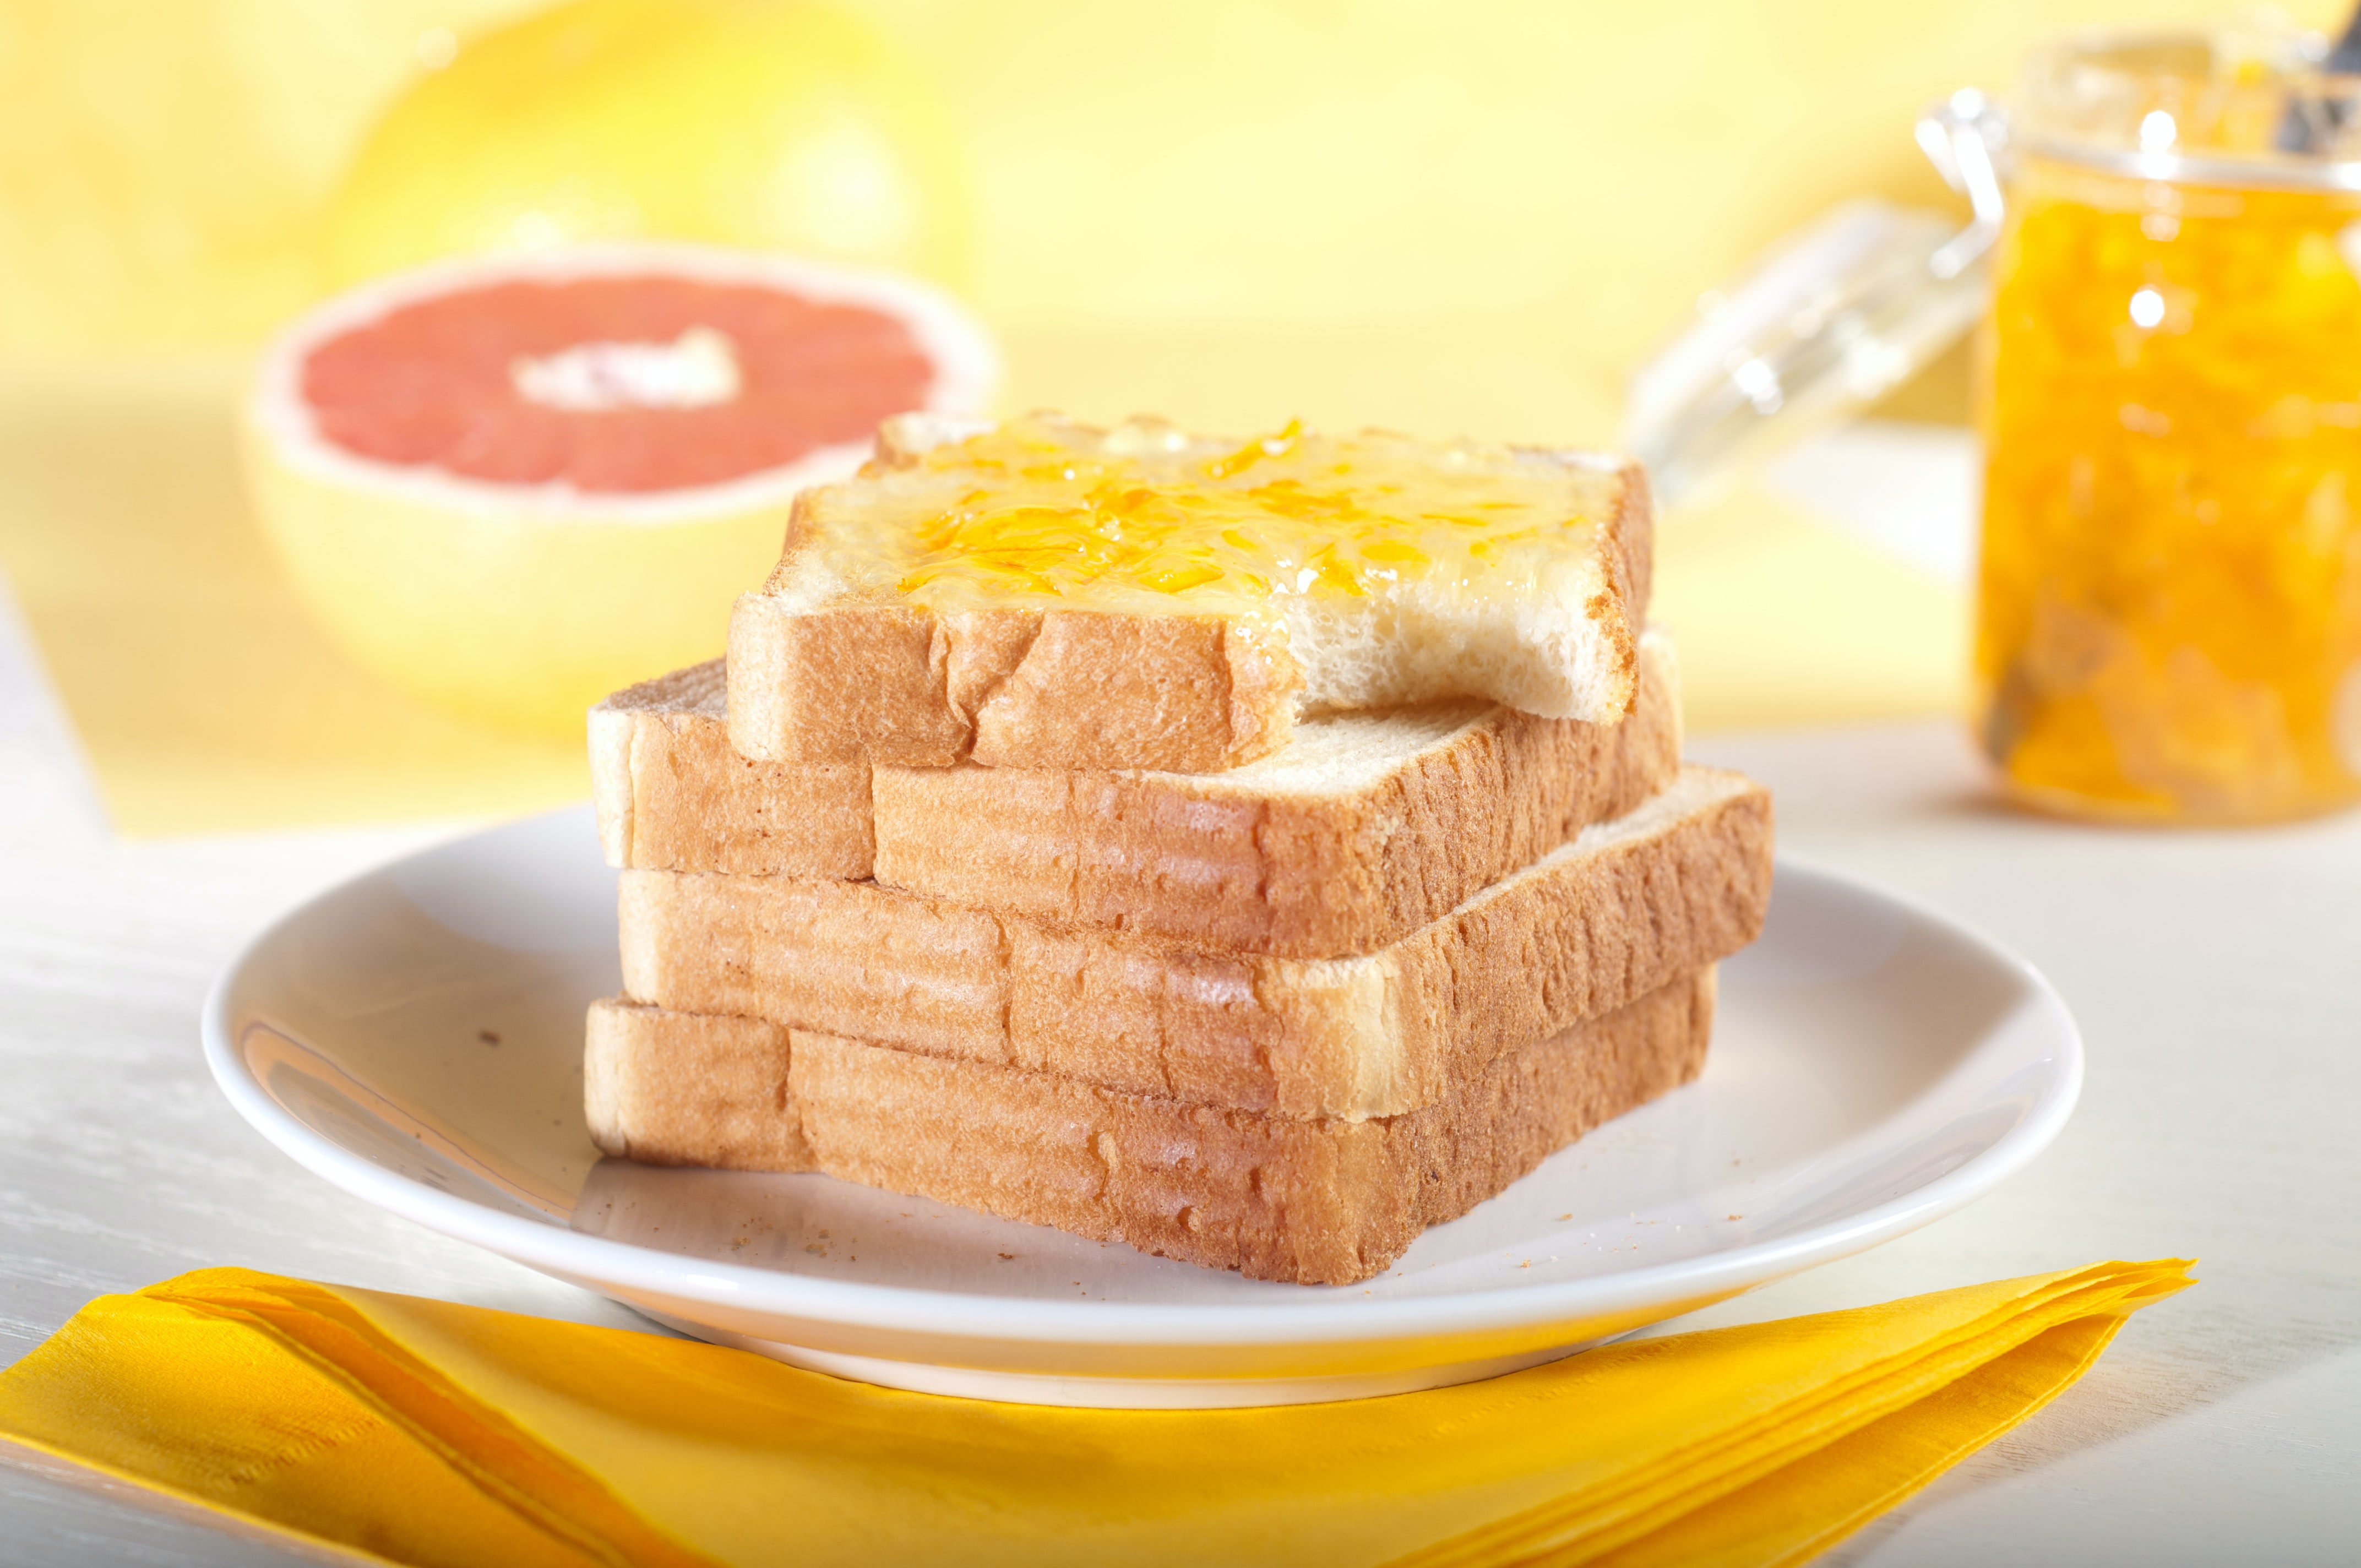 four sliced breads on plate